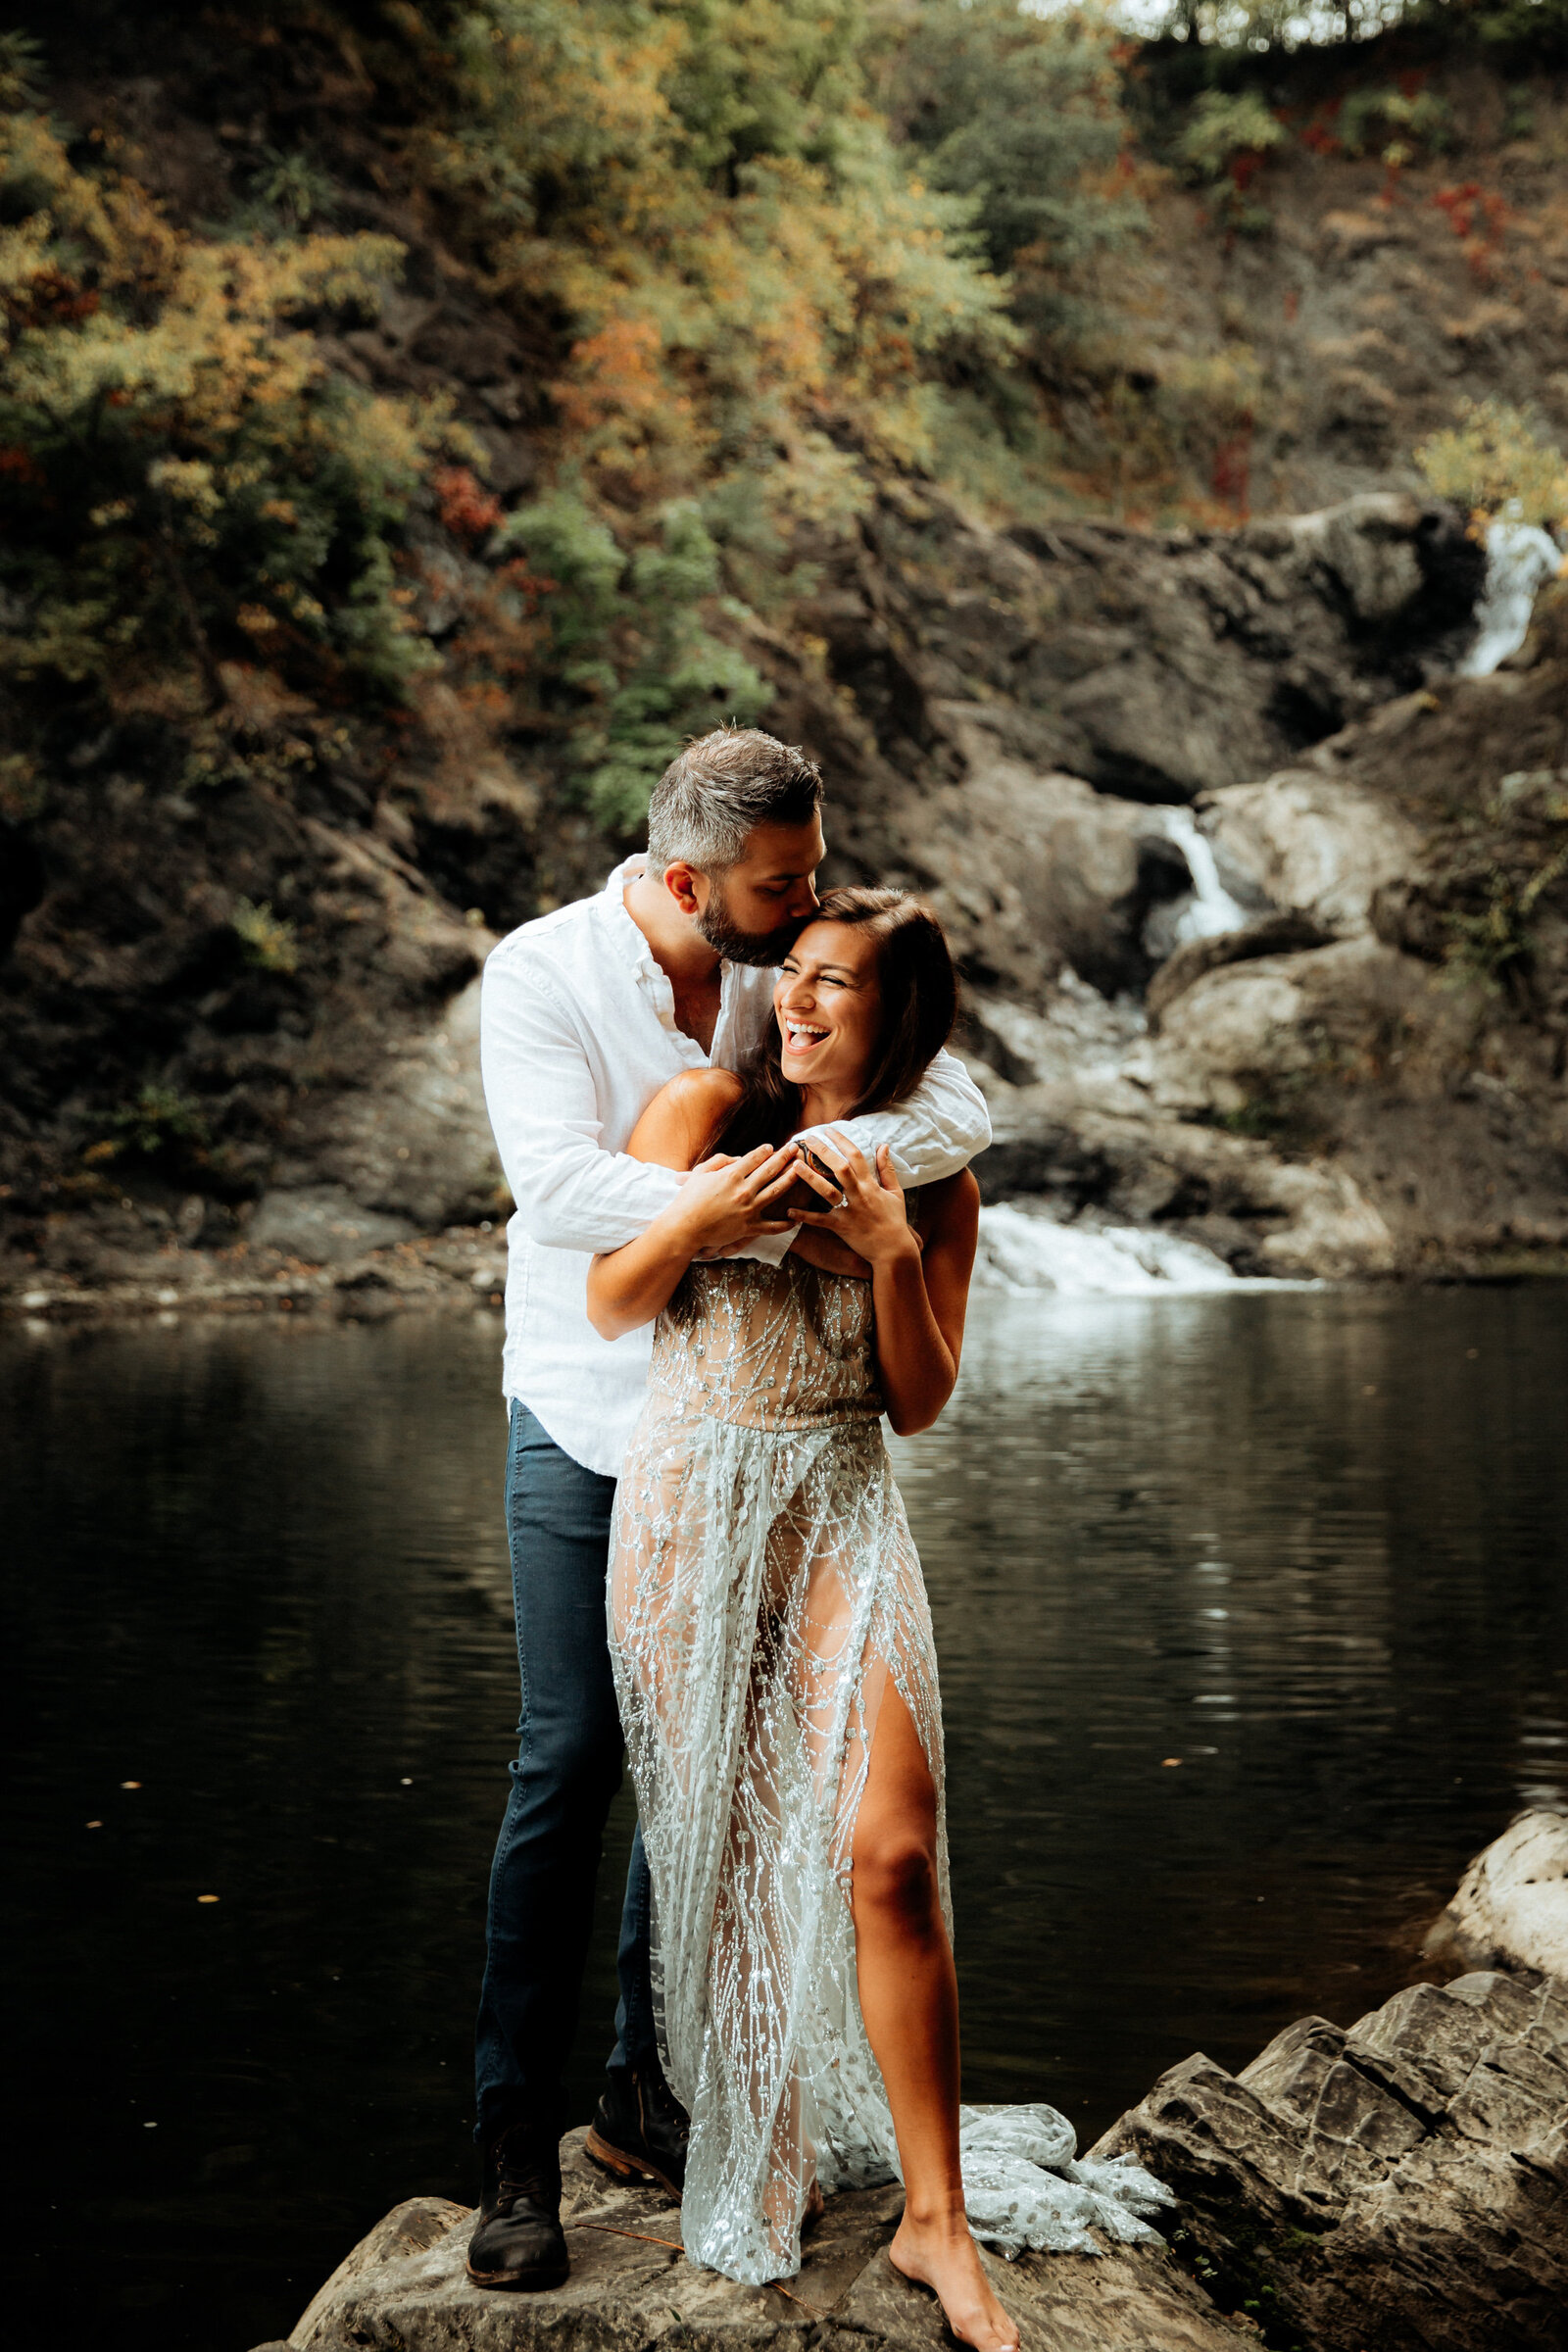 troy--upstate-ny-waterfall-engagement-photography-16